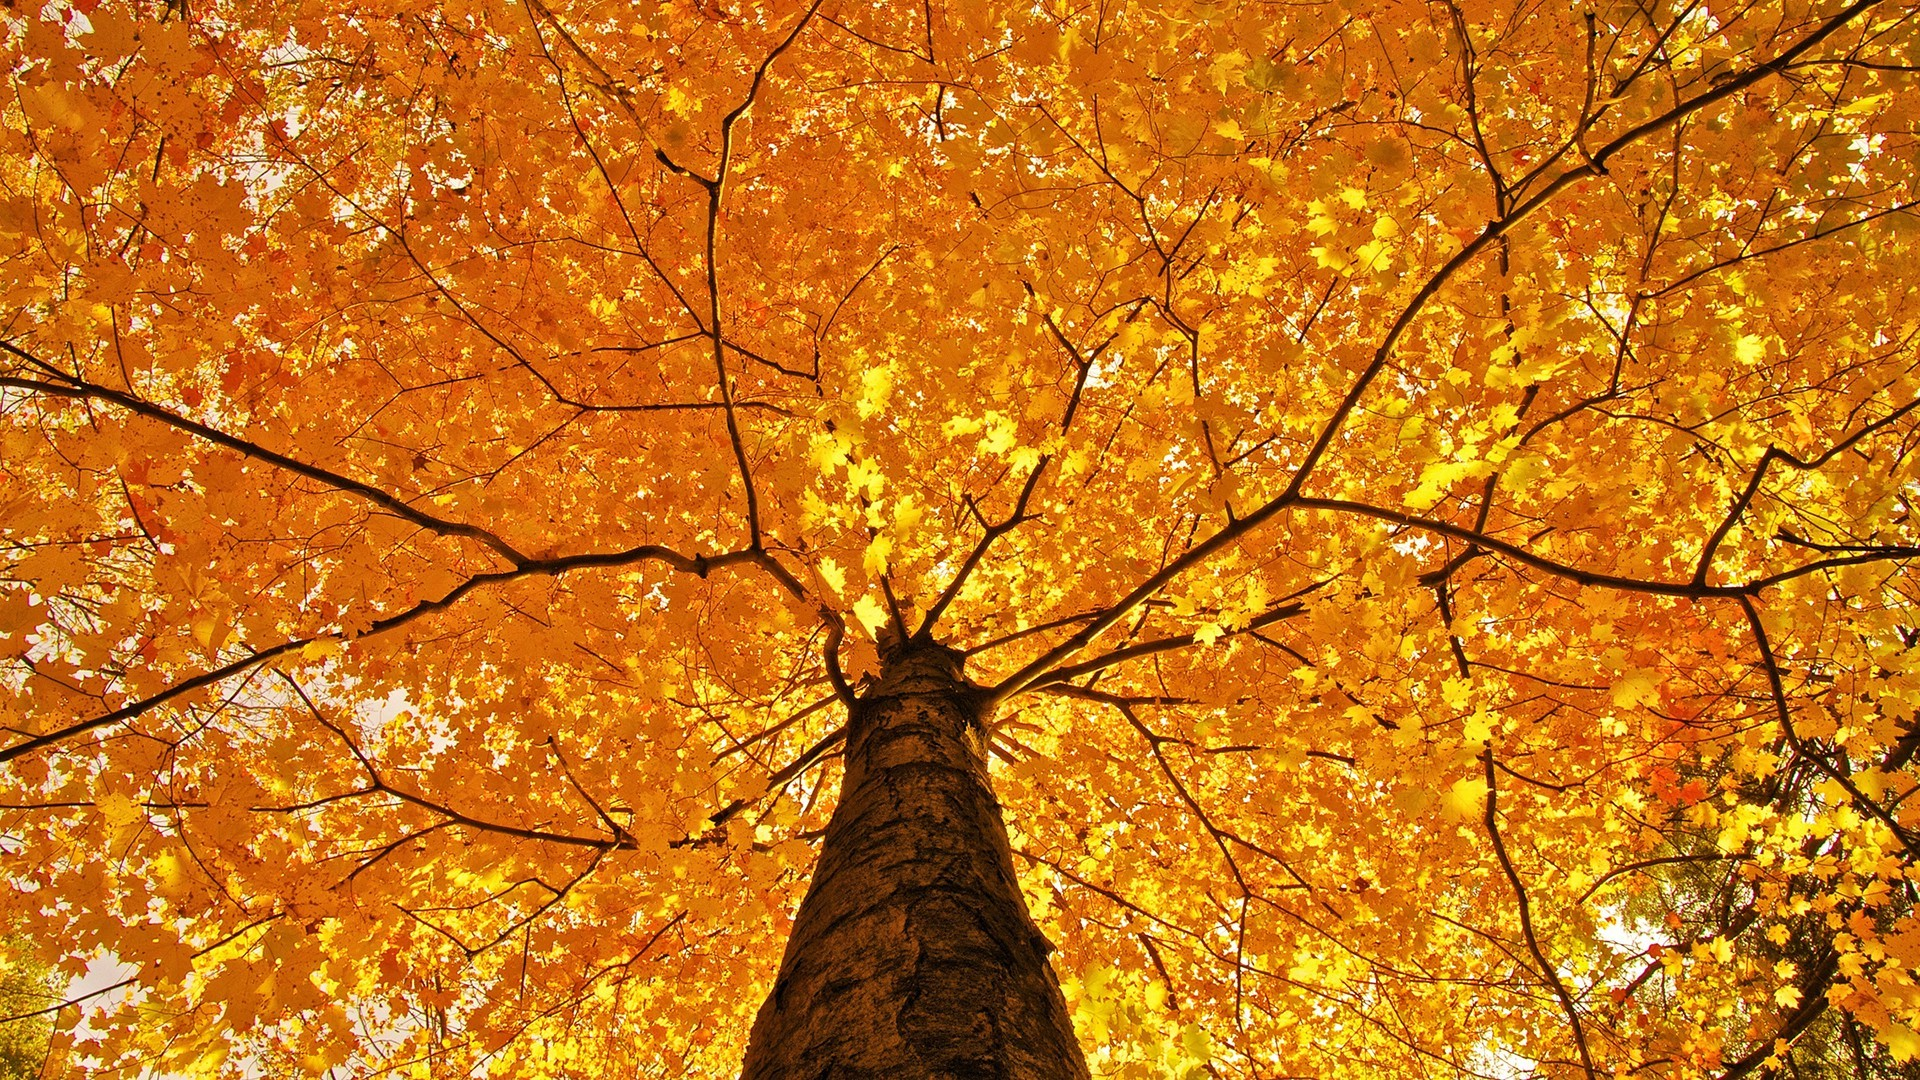 Fall Leaves Hd Mobile Wallpaper Nature Trees Leaves Branch Fall Maple Leaves Yellow